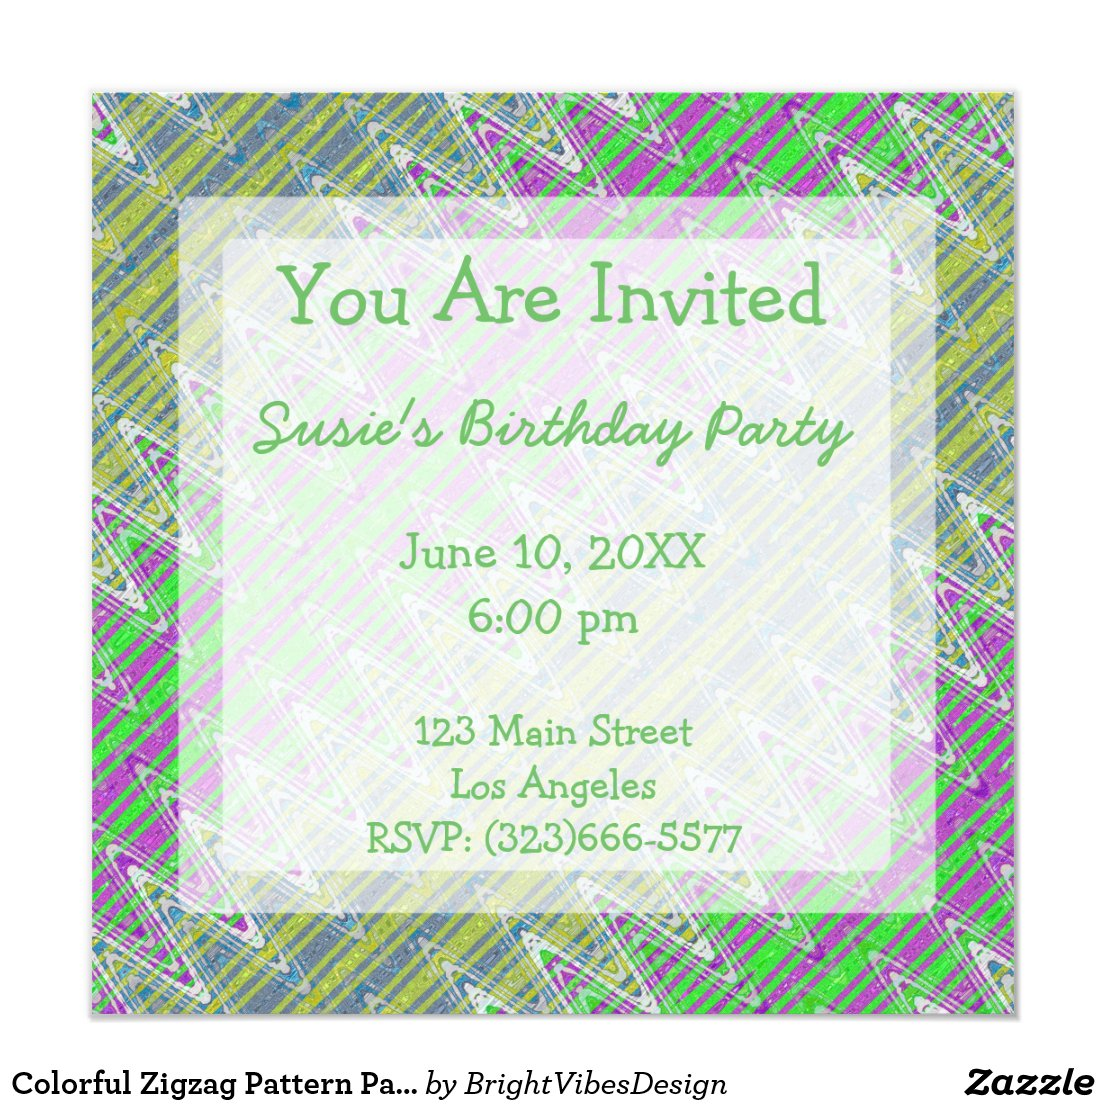 Colorful Zigzag Pattern Party Invites